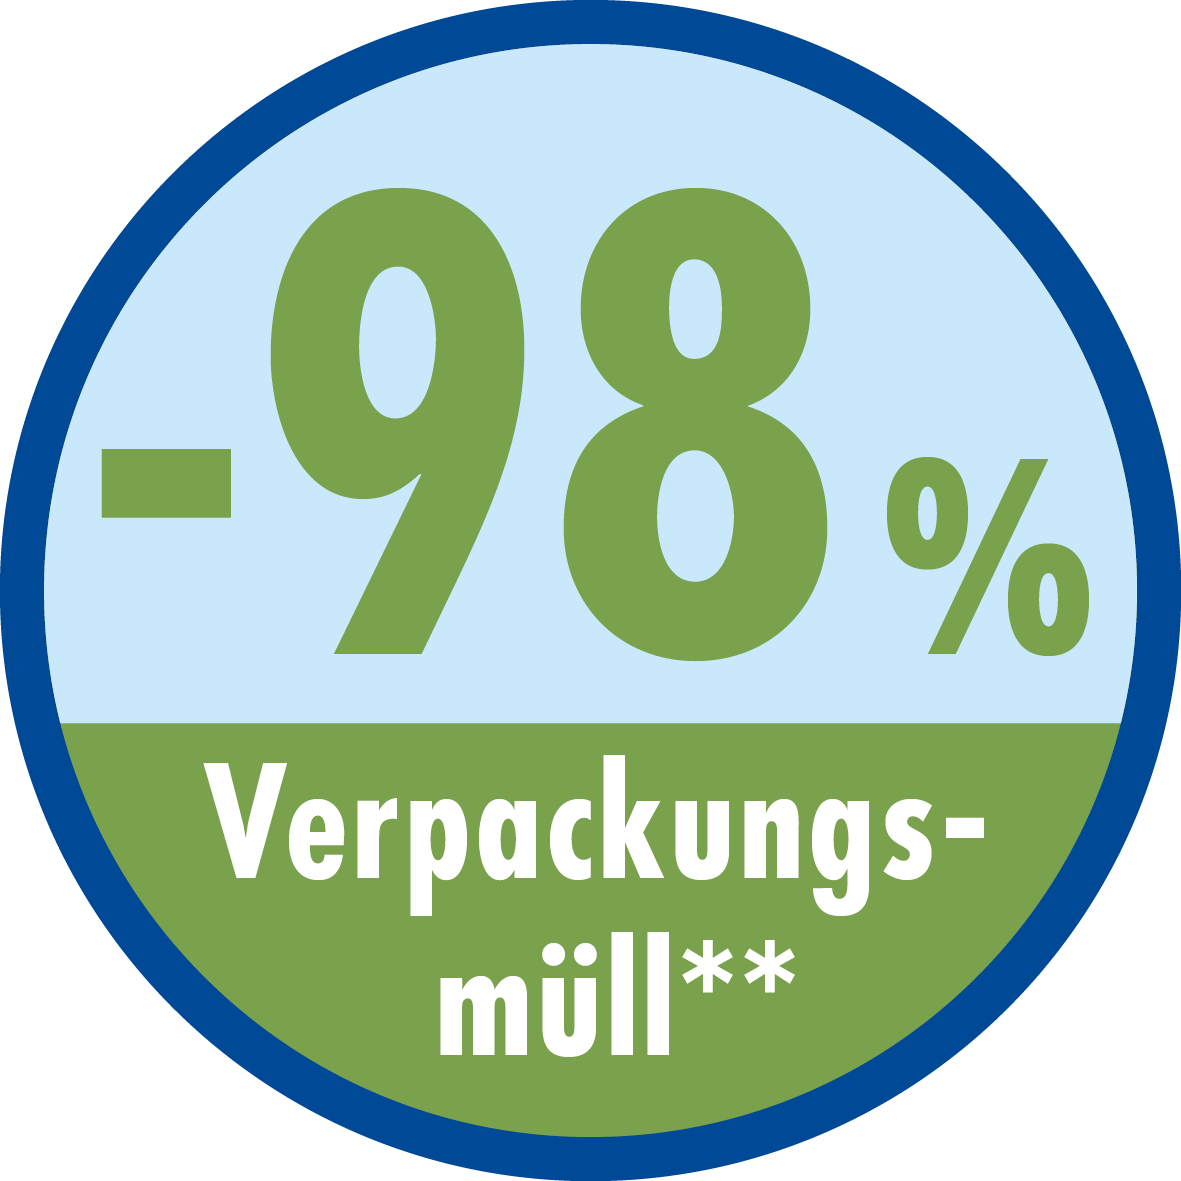 -98% Verpackungsmüll